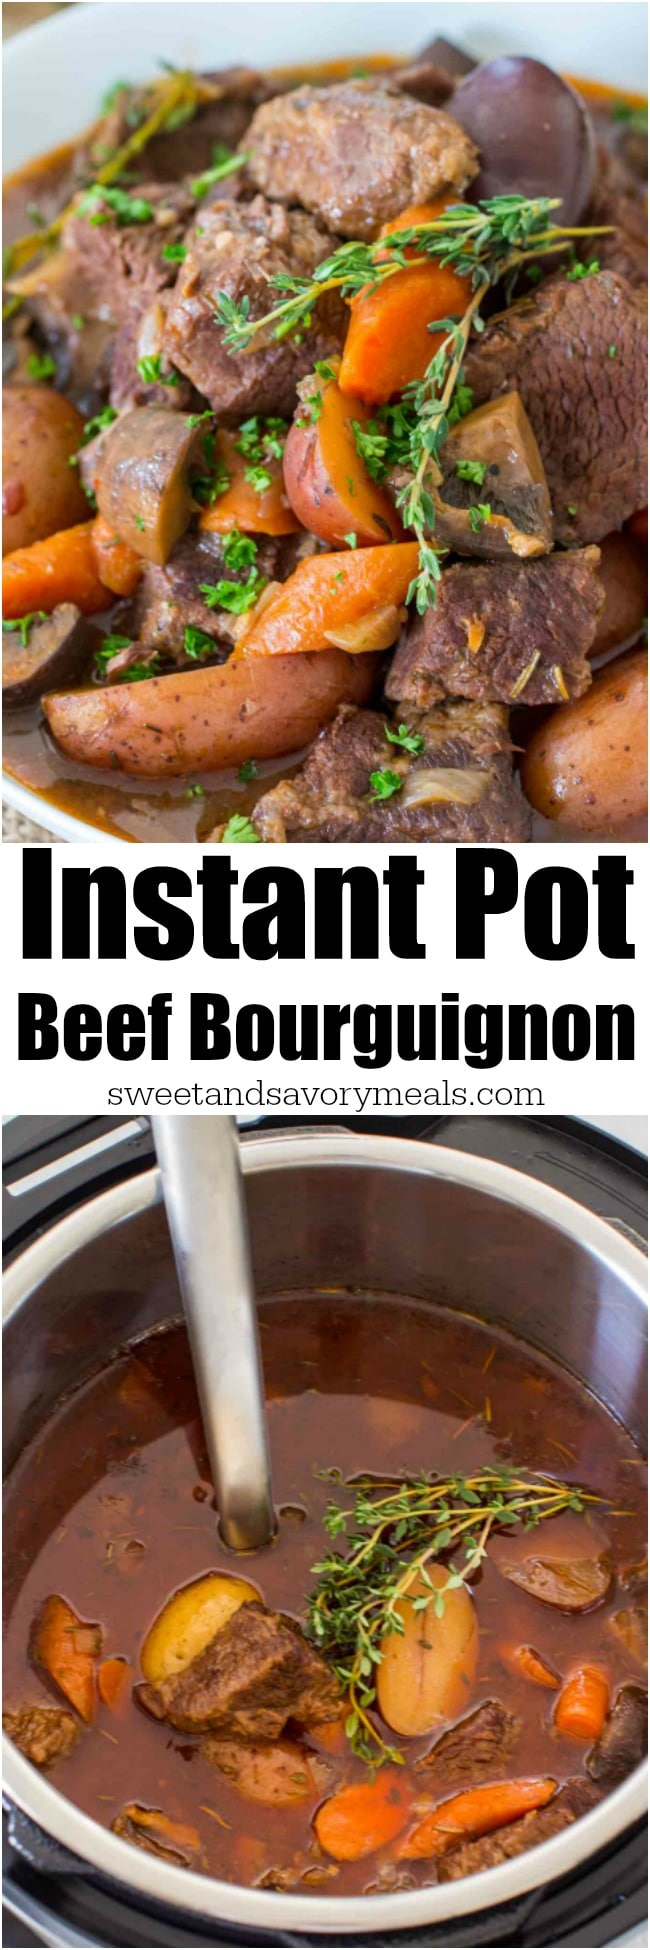 Photo collage of Instant Pot Beef Bourguignon for Pinterest.